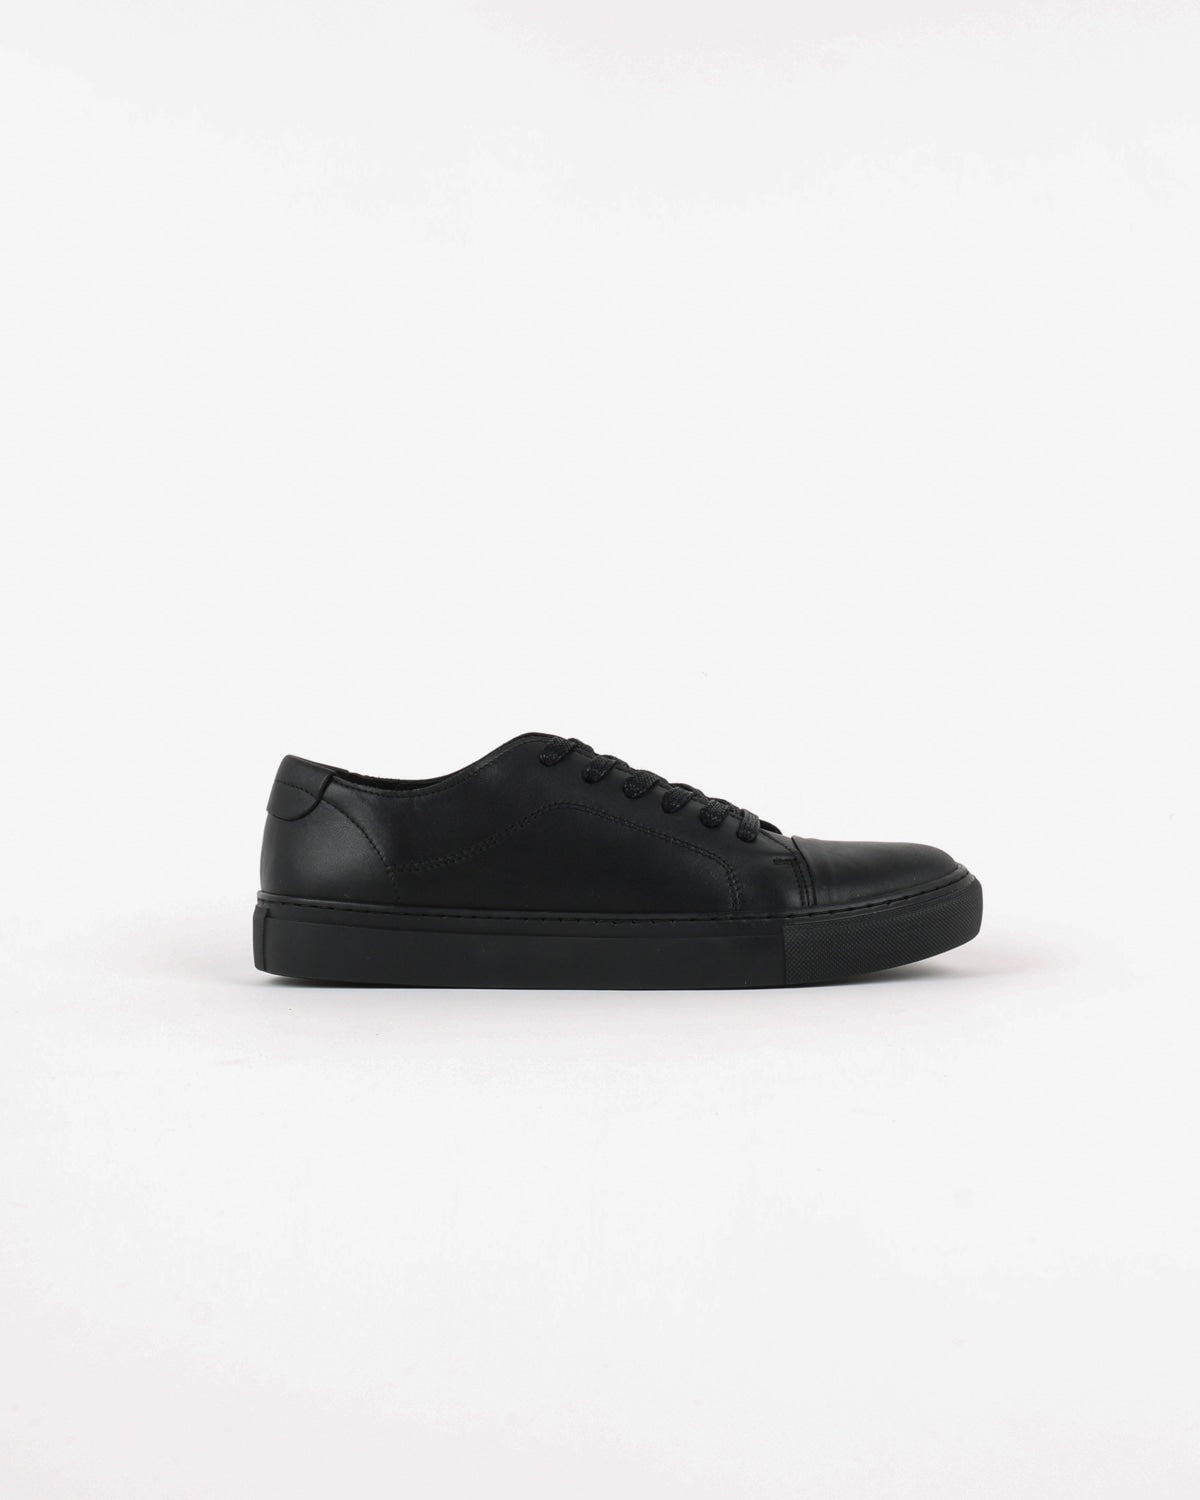 garment project_classic lace sneaker_black monochrome_view_1_4